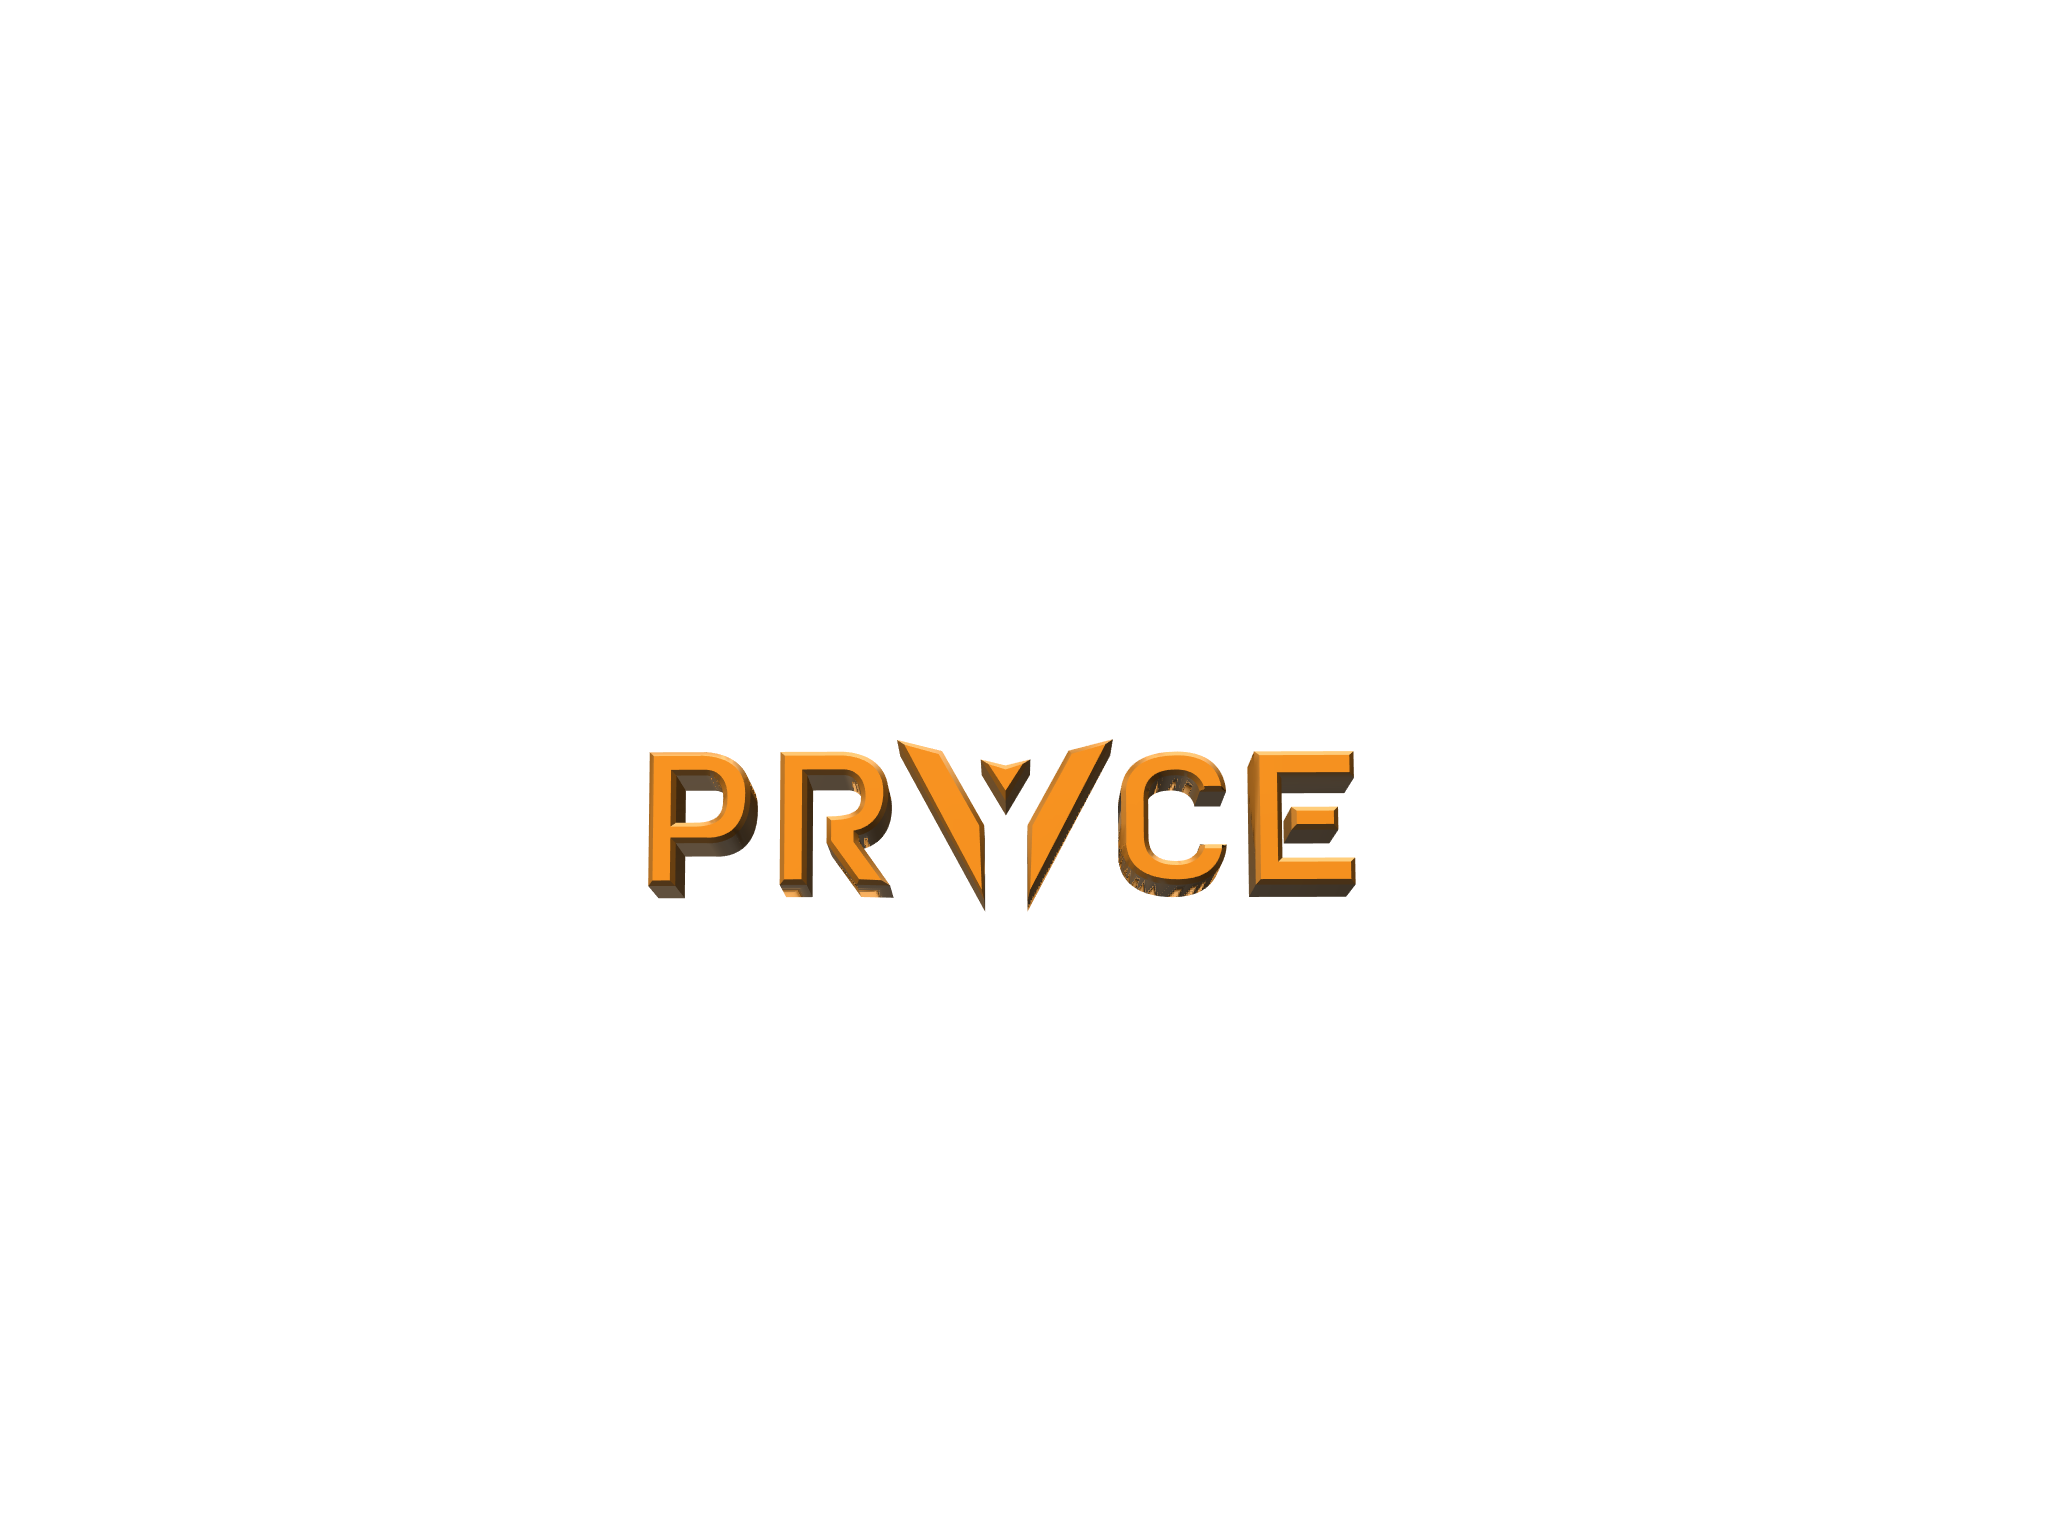 pryce 3 - 3D design by tootie Feb 27, 2018